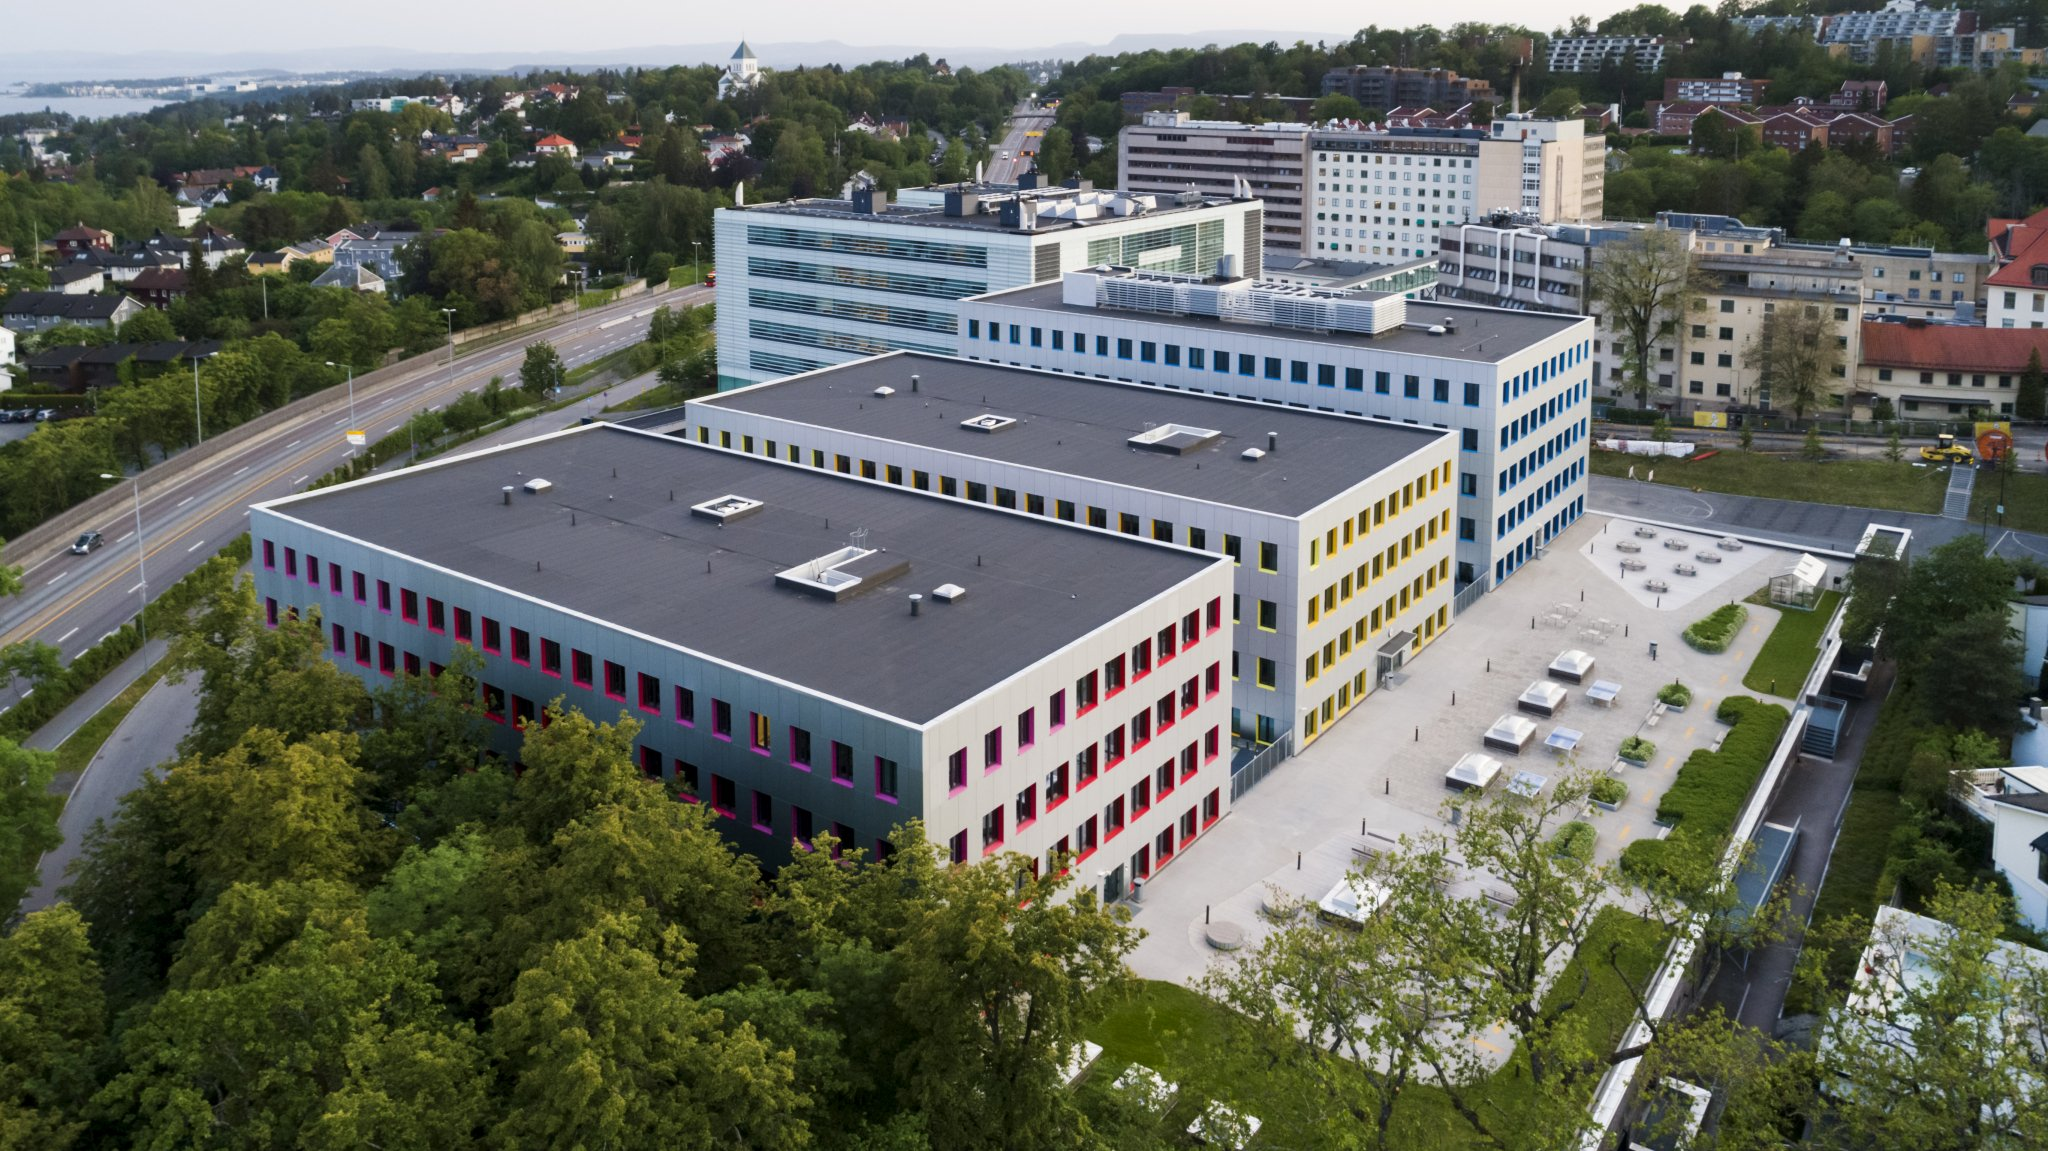 Oslo Cancer Cluster Innovation Park, the Oslo University Hospital research building and Norwegian Radium Hospital are located in the new innovation district Oslo Science City.